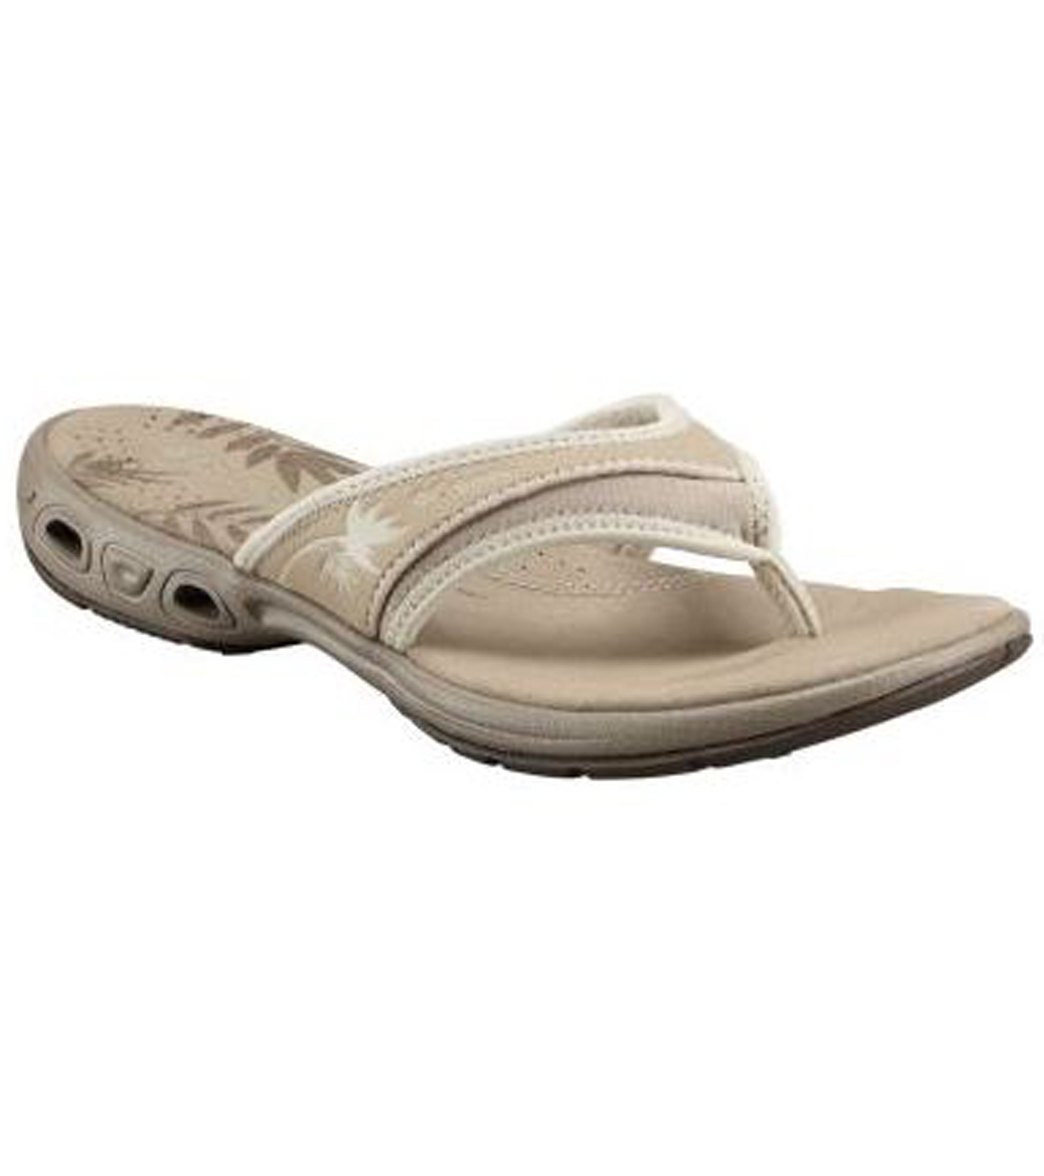 c0b398e20db Columbia Women s Kambi Vent Flip Flop at SwimOutlet.com - Free Shipping